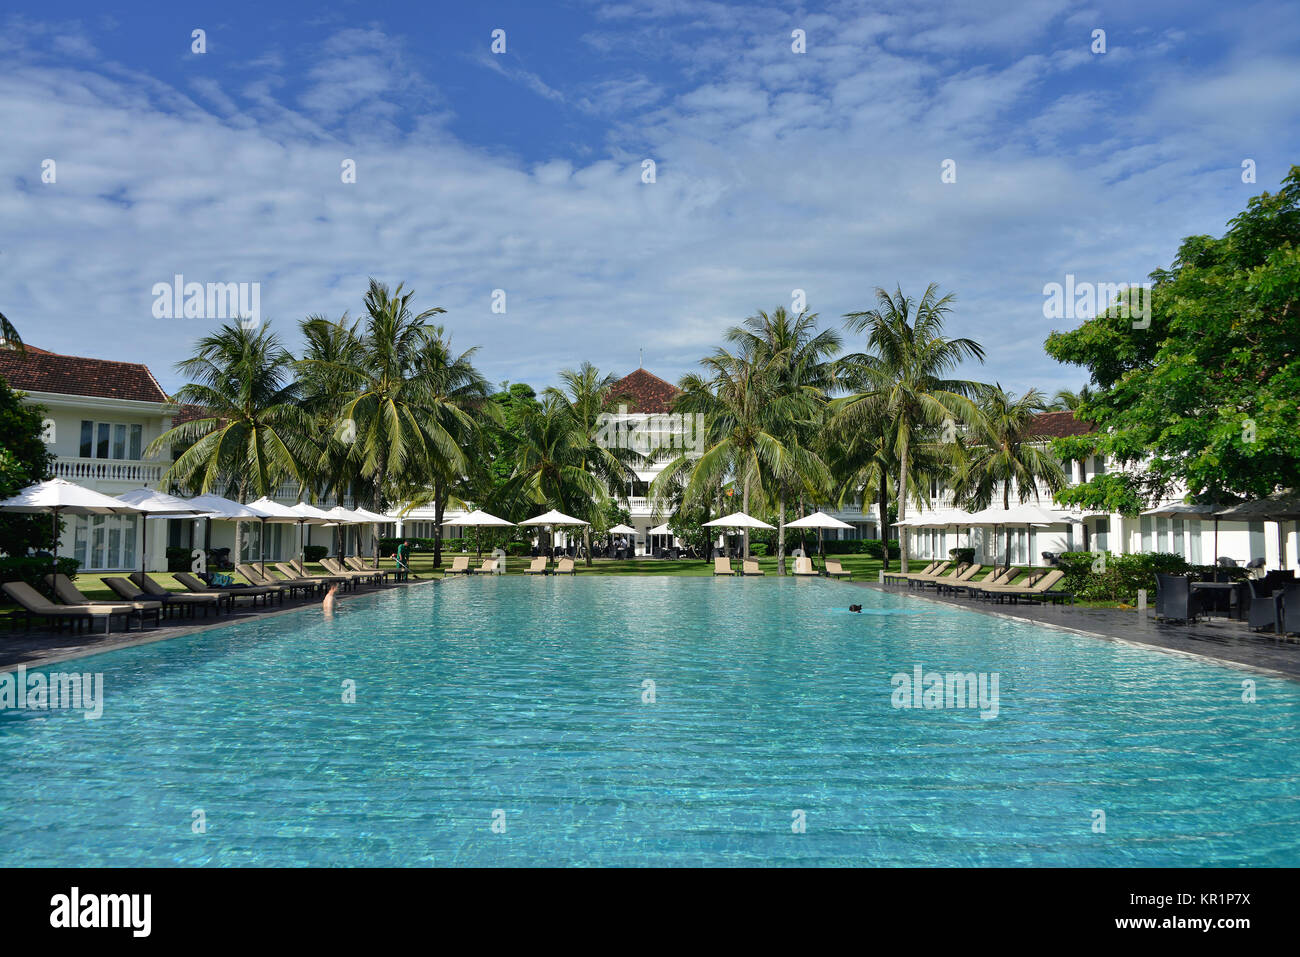 Swimming pool, boutique Hoi in Resort, Hoi In, Vietnam, Swimmingpool, Boutique Hoi An Resort, Hoi An Stock Photo